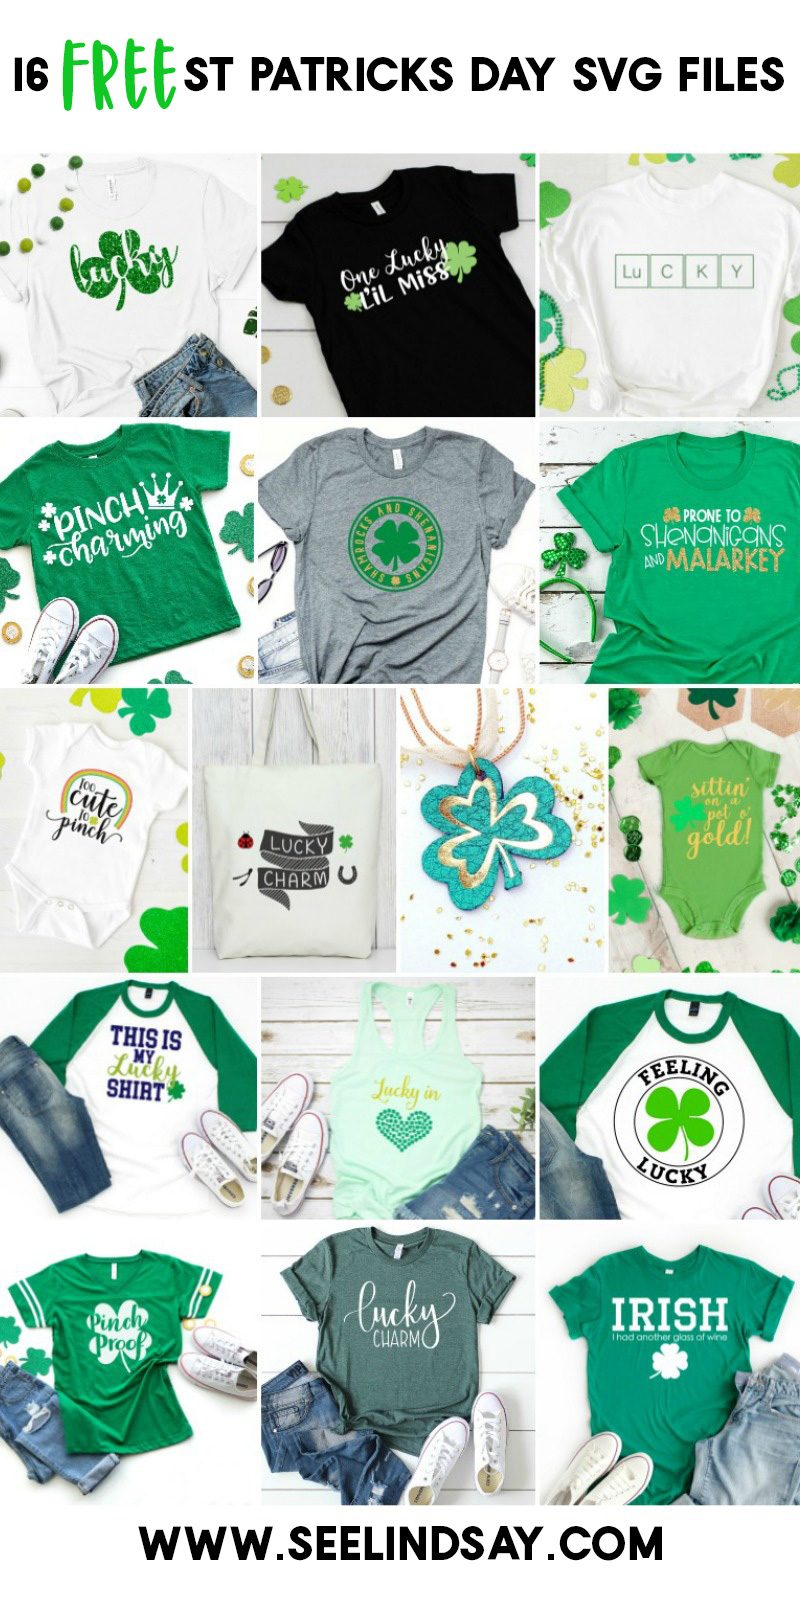 Making this easy DIY St Patricks Day Shirt is so easy and can be completed in minutes by using your Silhouette or Cricut machines. Grab the free St Patricks Day SVG files below to make your own today. #totallyfreeSVG #stpatricksdayshirt #stpatricksdaysvg #luckySVG #cricut #silhouette #heattransfervinyl